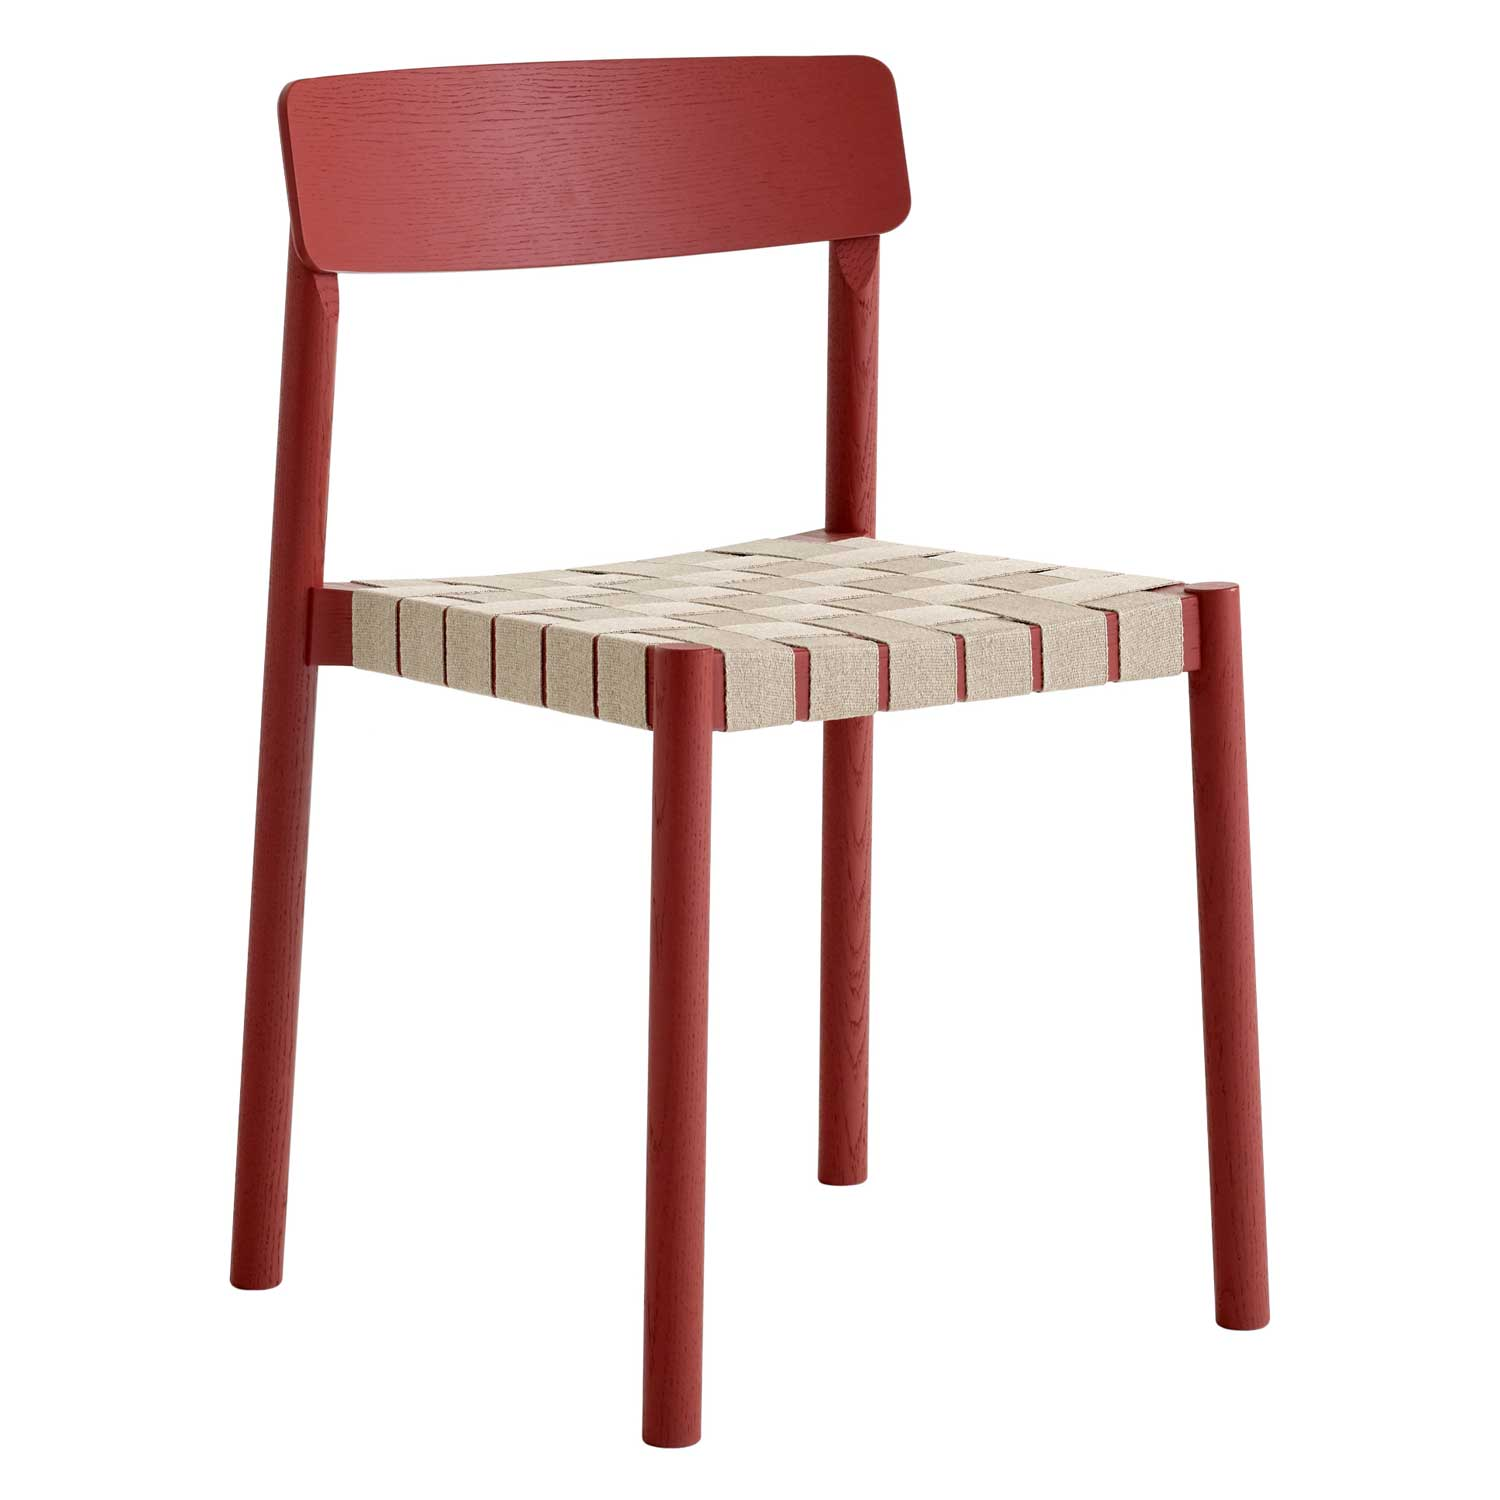 Bilde av &Tradition-Betty Chair TK1 Chair, Red/natural